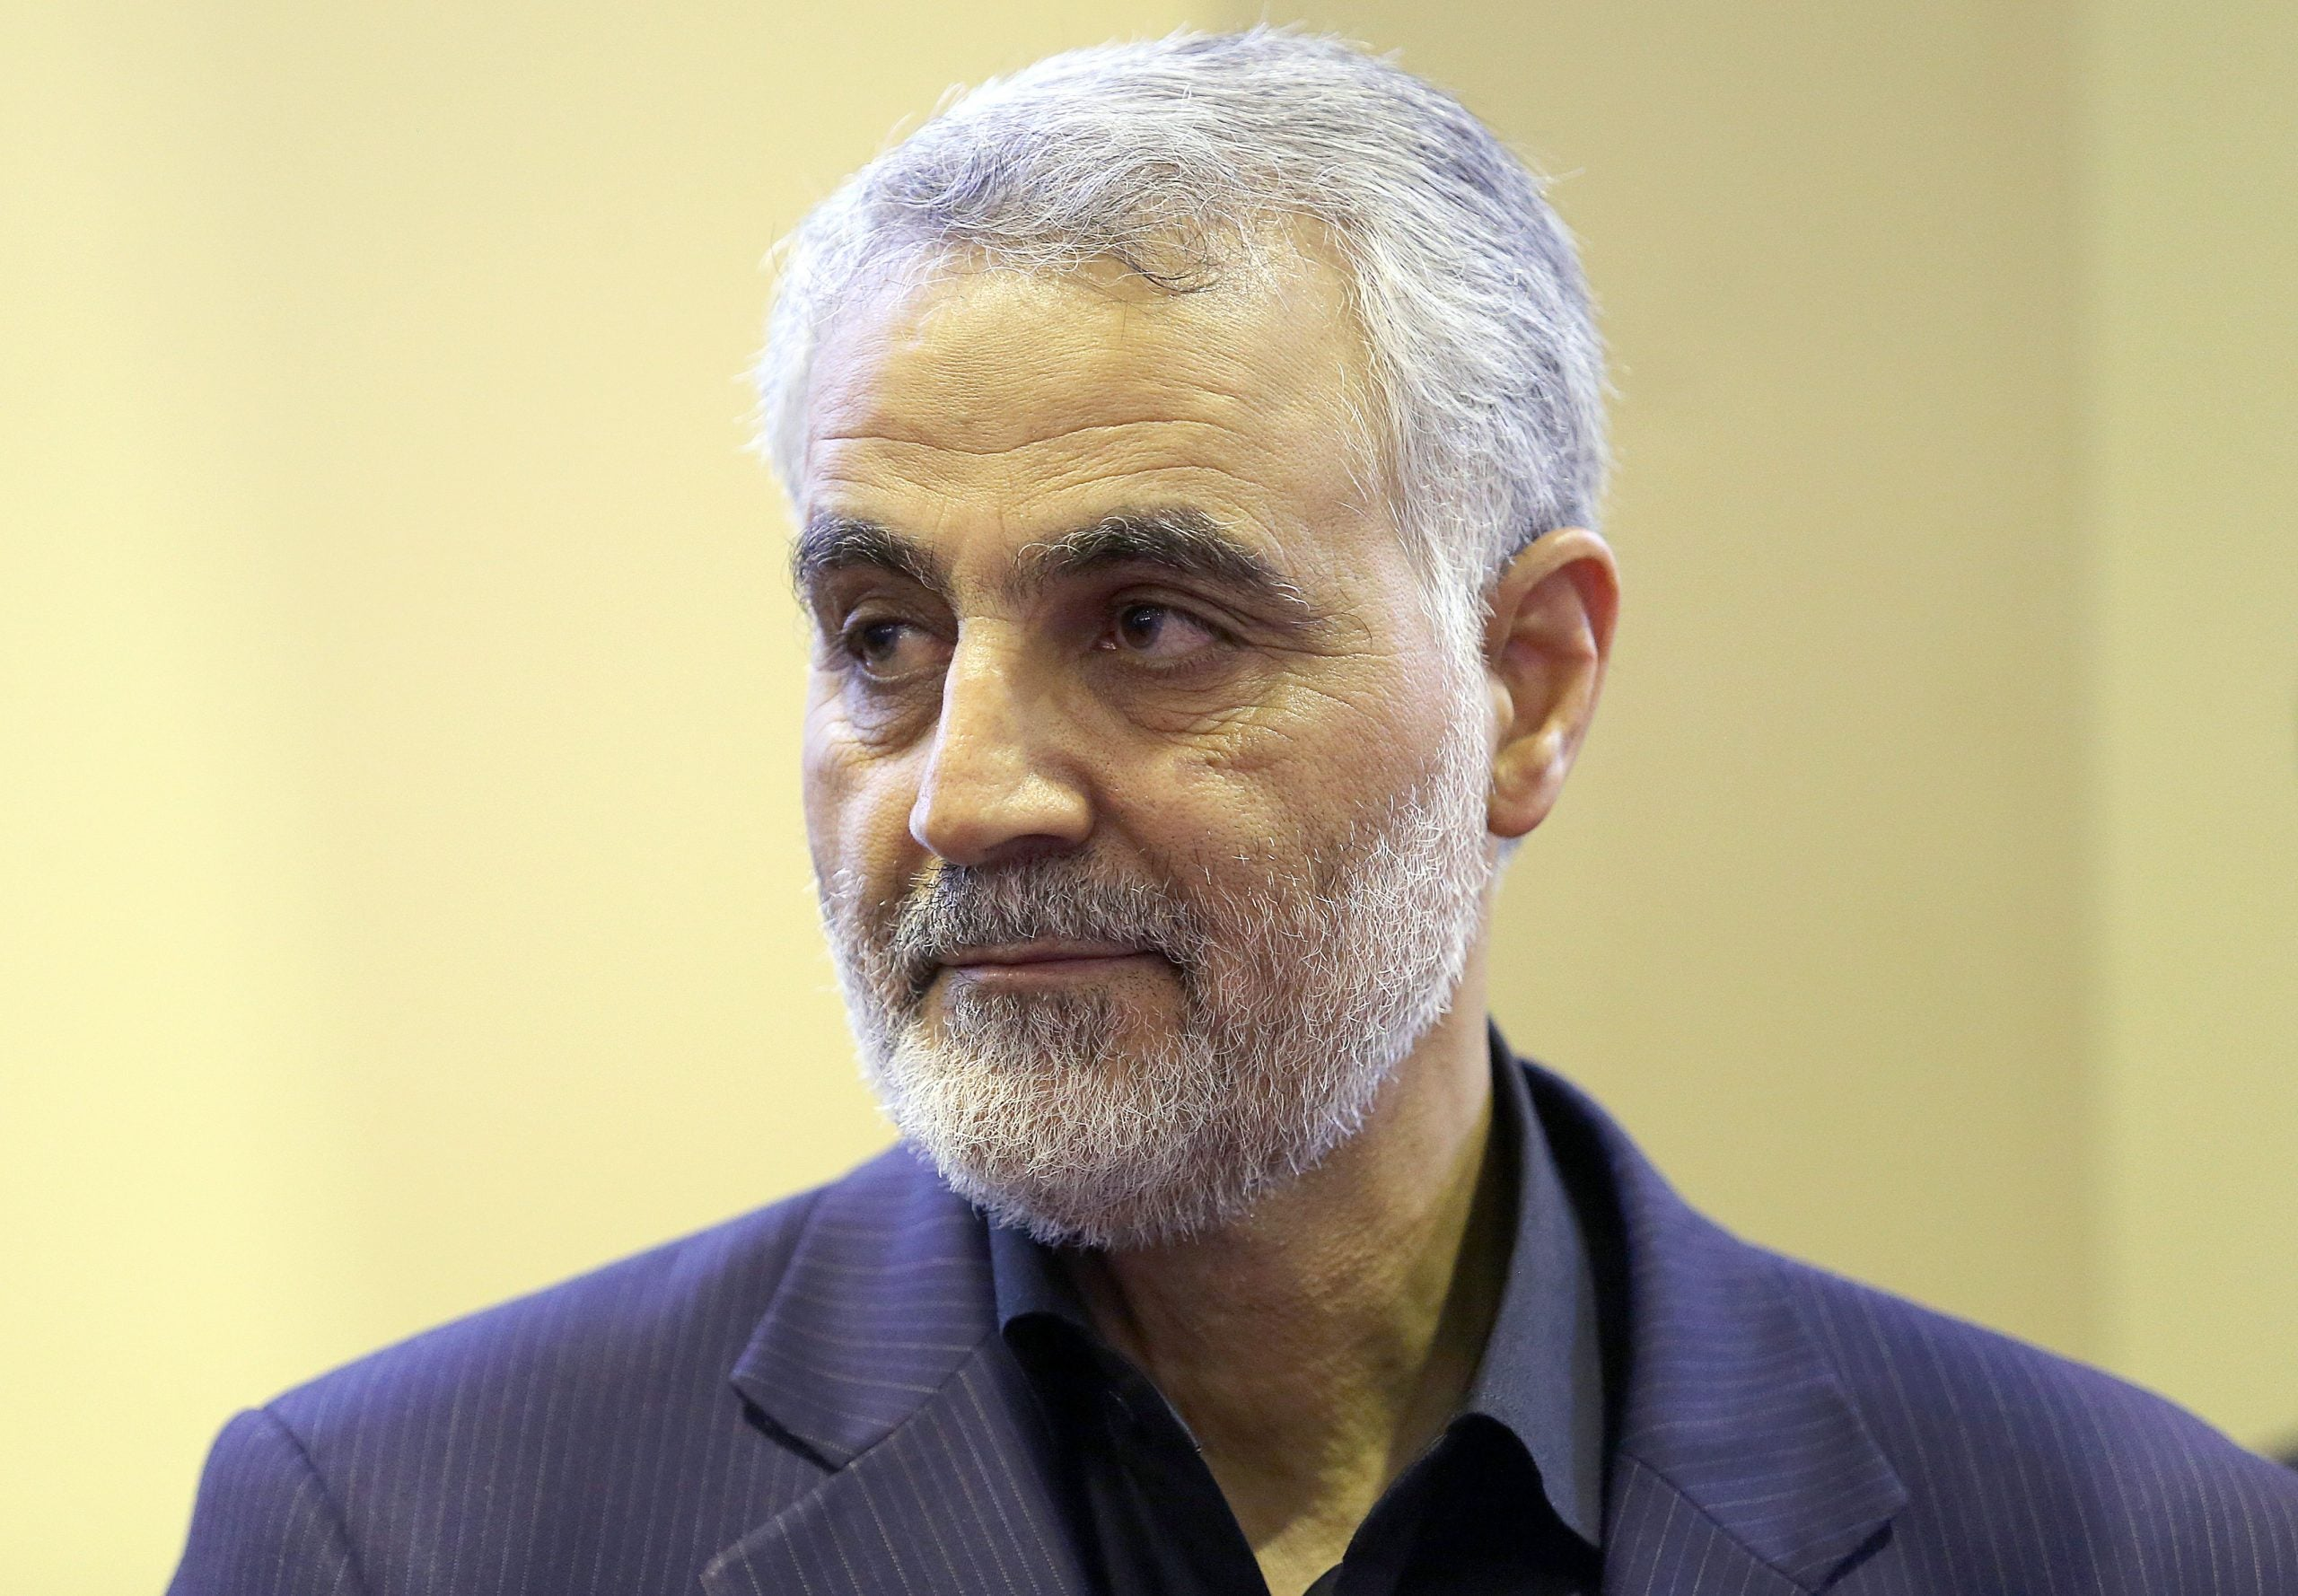 Qasem Soleimani brutalised the Middle East, but the bloodshed is far from over